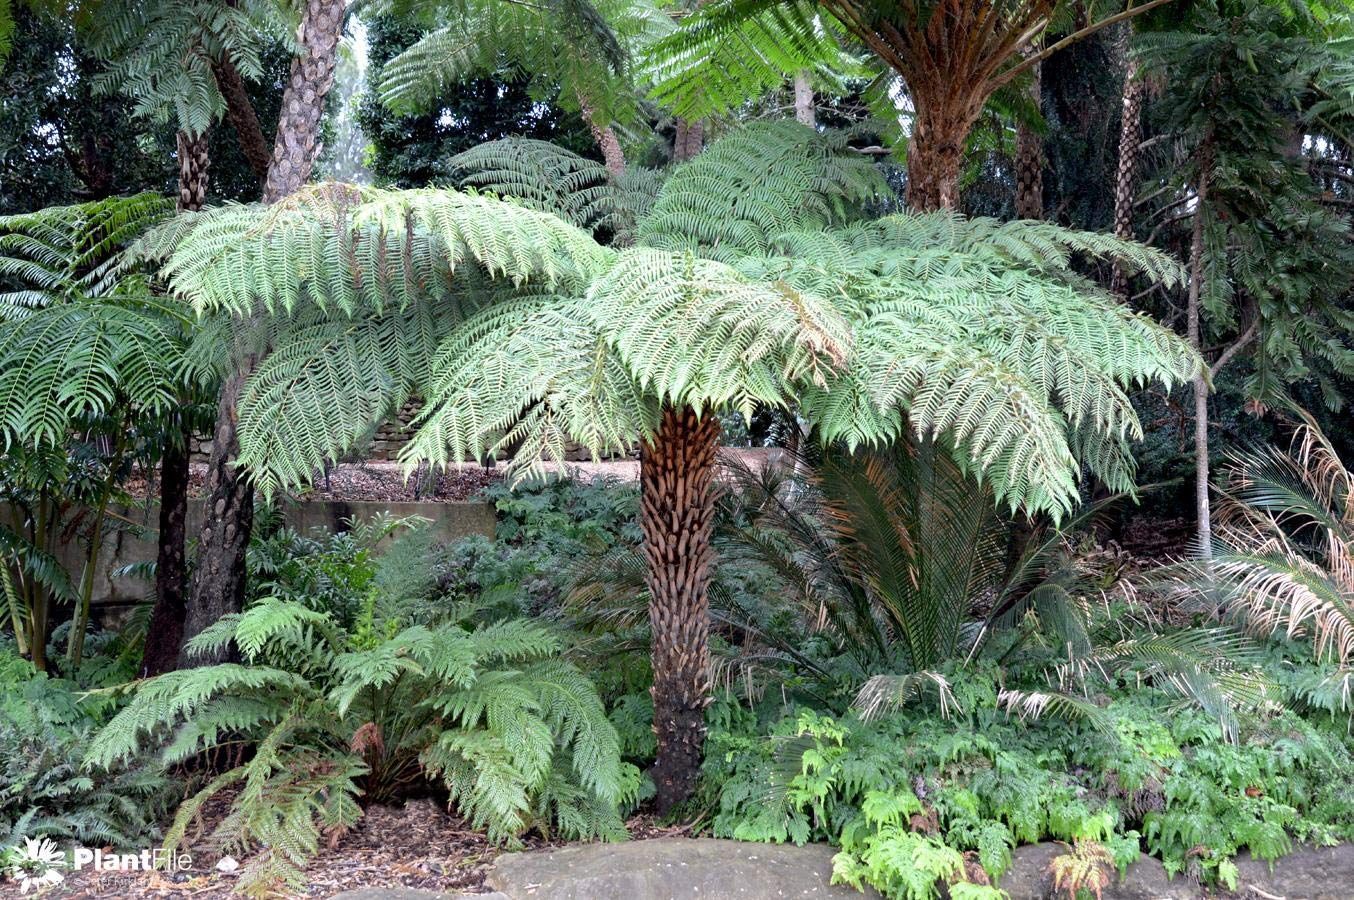 Cyathea Australis - Rough Tree Fern in 9cm Pot, IR Trading Ltd.